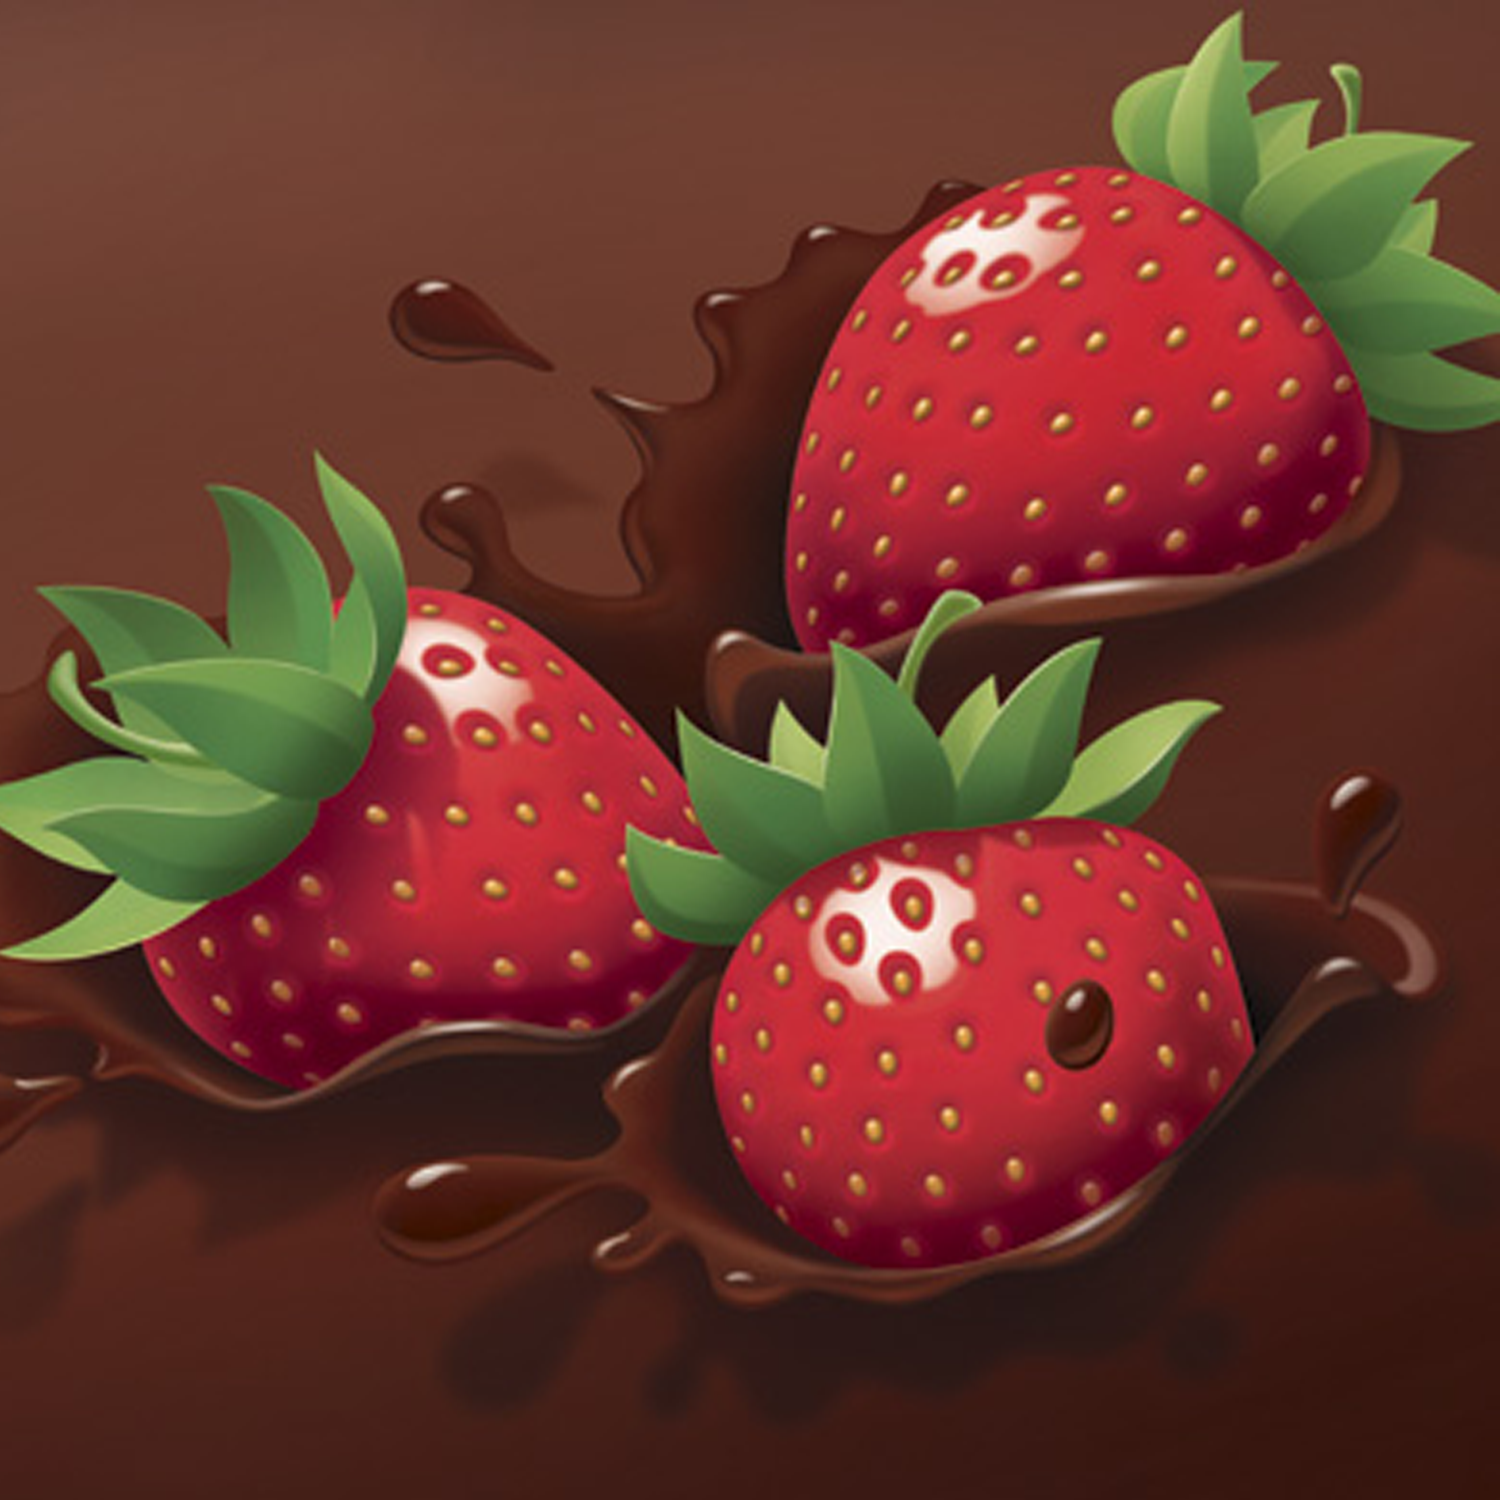 Strawberries And Chocolate is the latest dance single from Jay Carteré. Download it here.